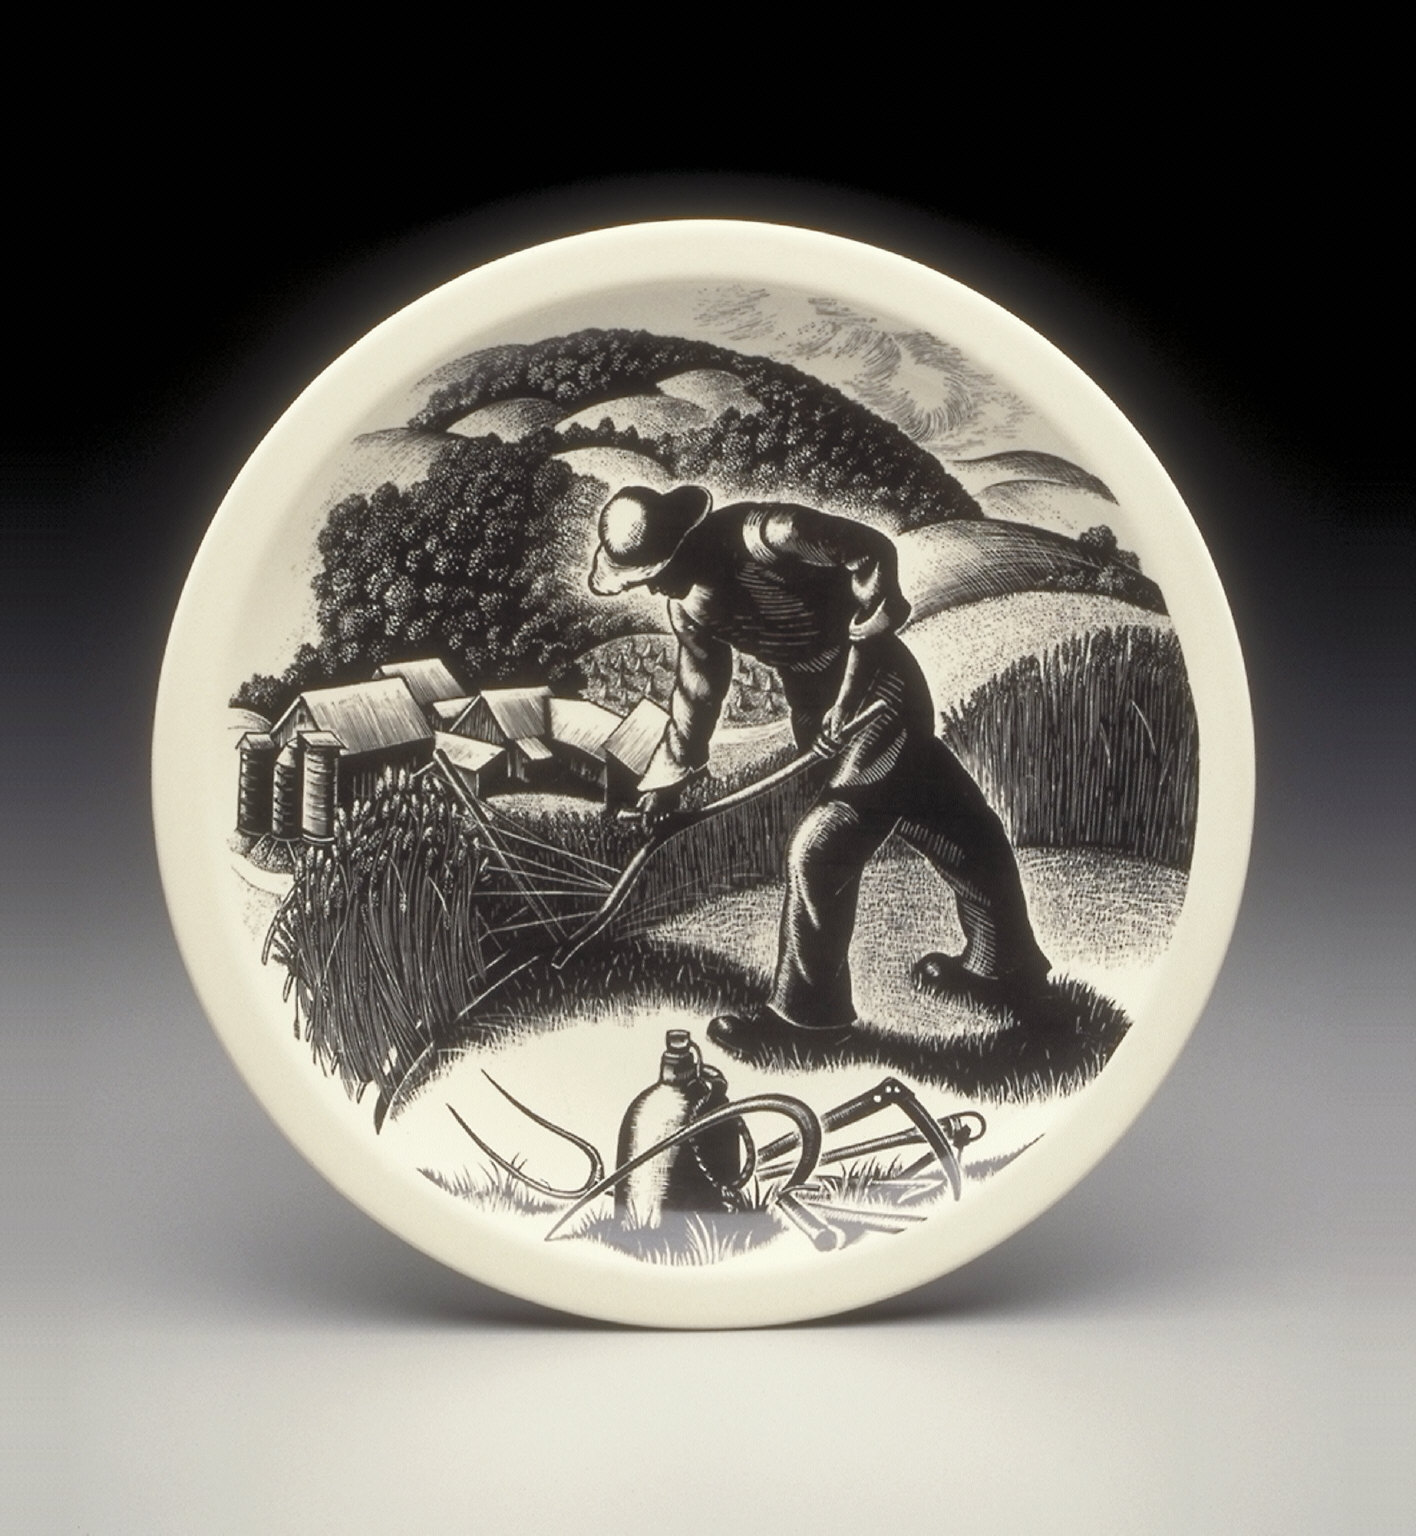 'Farming' plate from the 'New England Industries' series